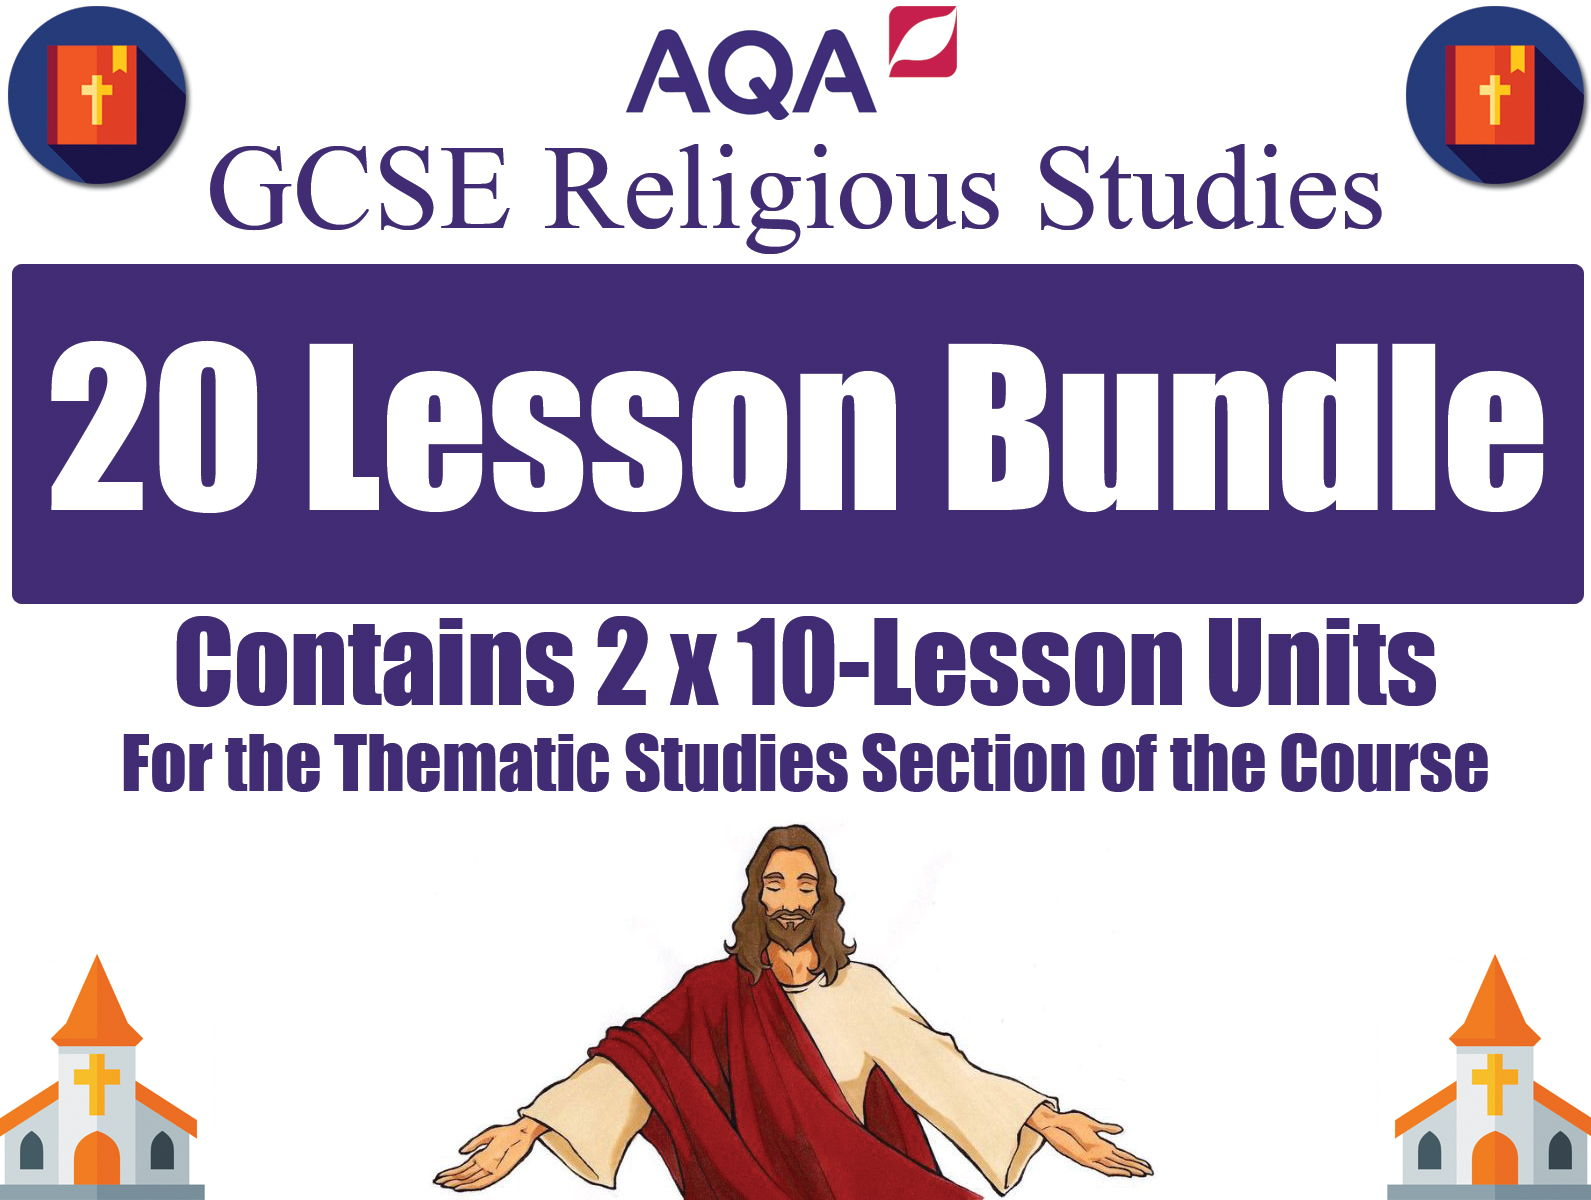 'Religion & Life' + 'Religion, Human Rights & Social Justice' (20 Lessons) [GCSE RS - AQA]